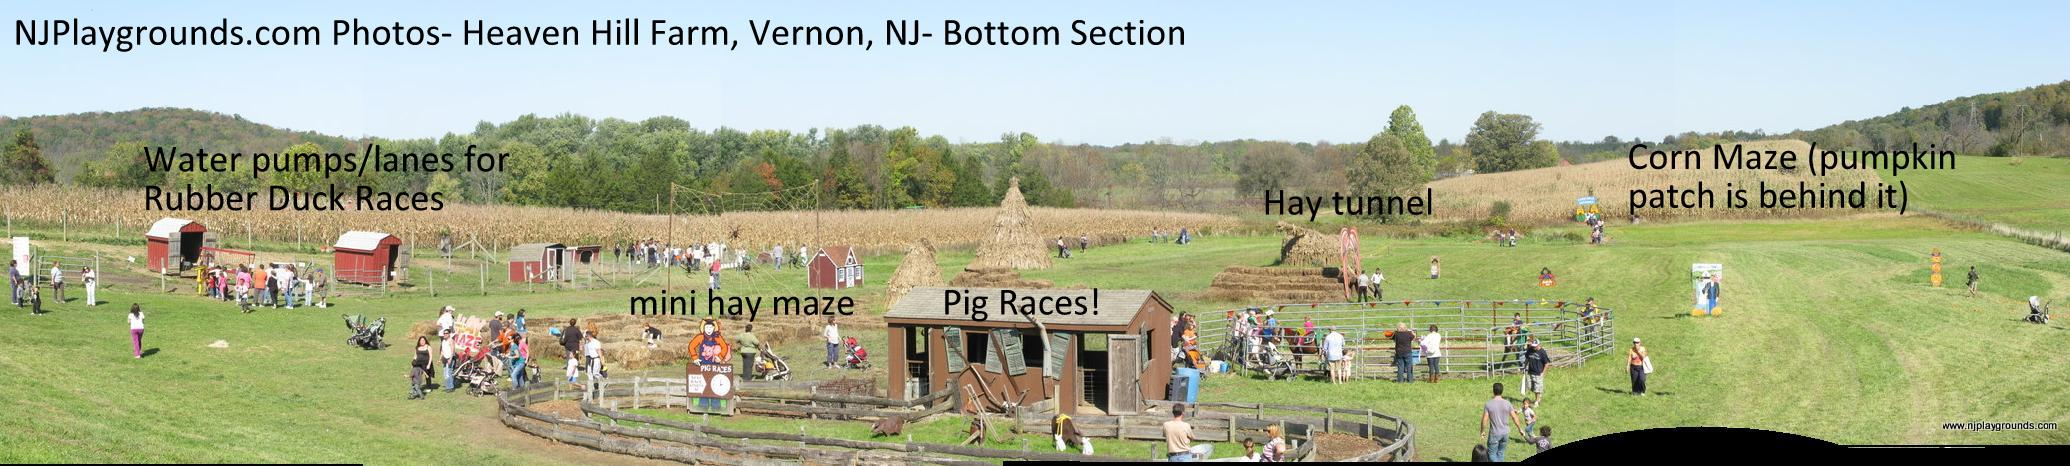 Heaven Hill Farm Vernon NJ Review Your Complete Guide To NJ Playgrounds